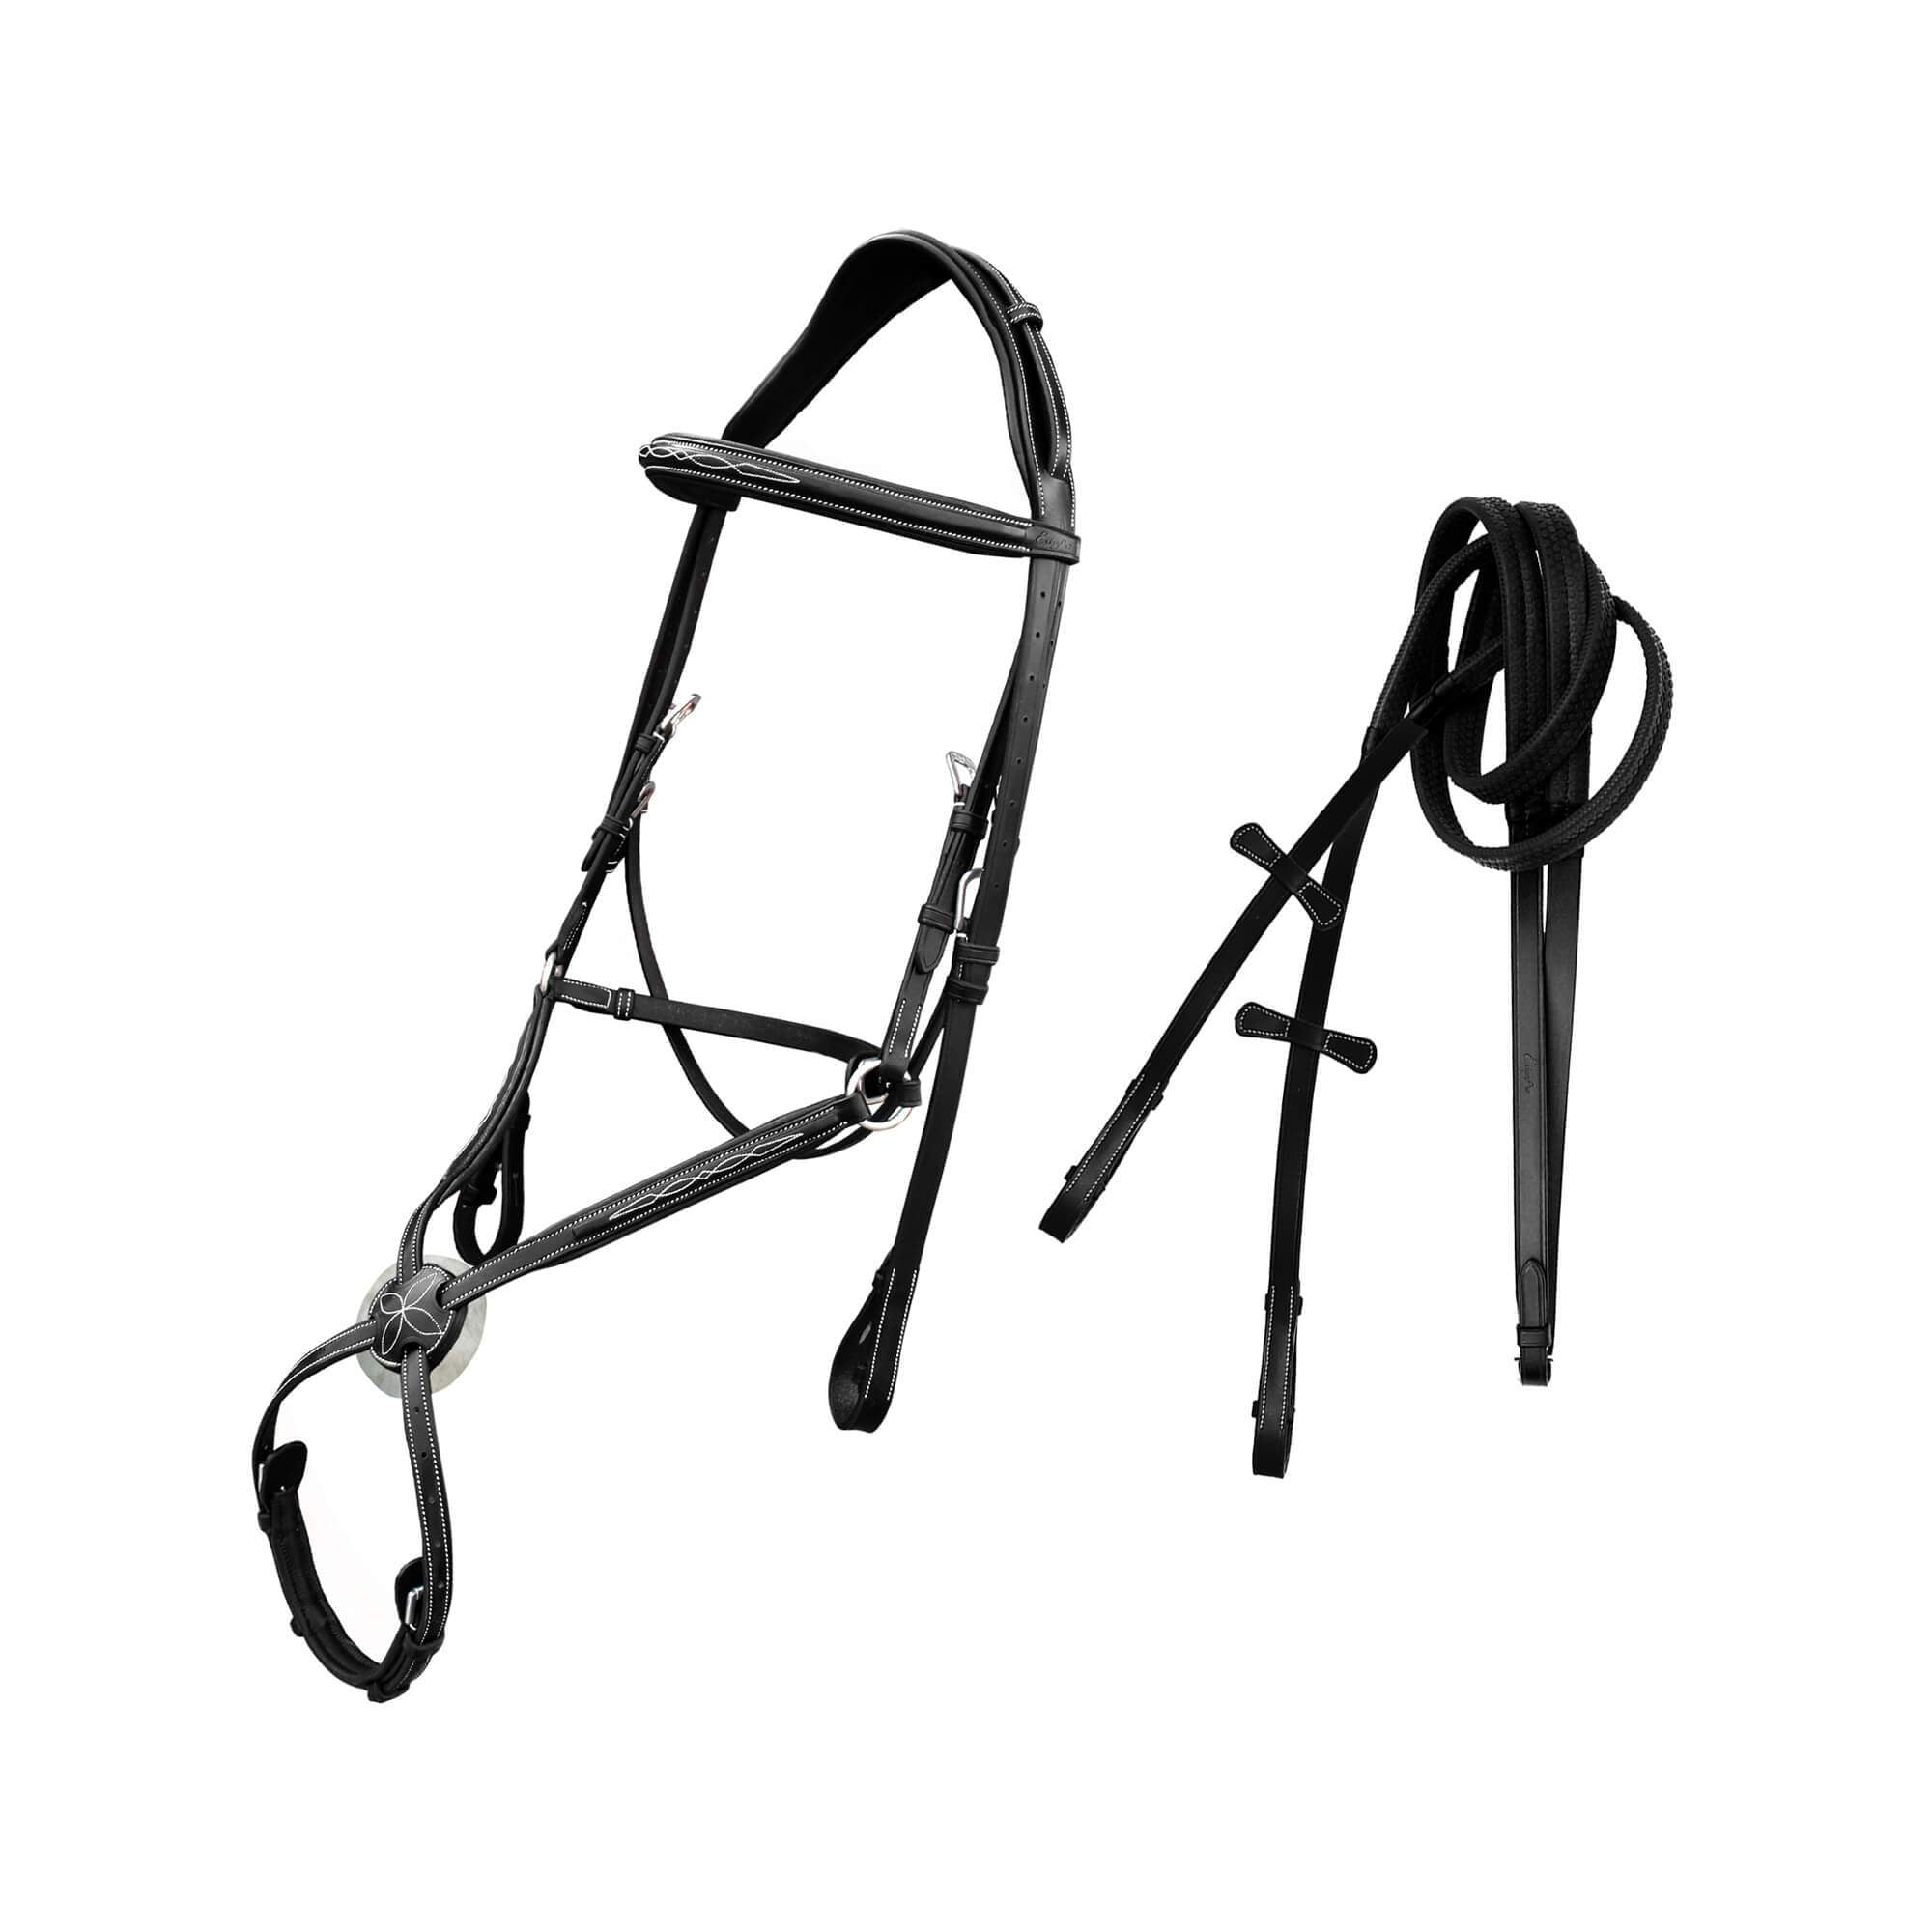 English Bridles-ExionPro Monocrown Crown Piece Adjustable Designer Figure 8 Bridle with Reins-Bridles and Reins